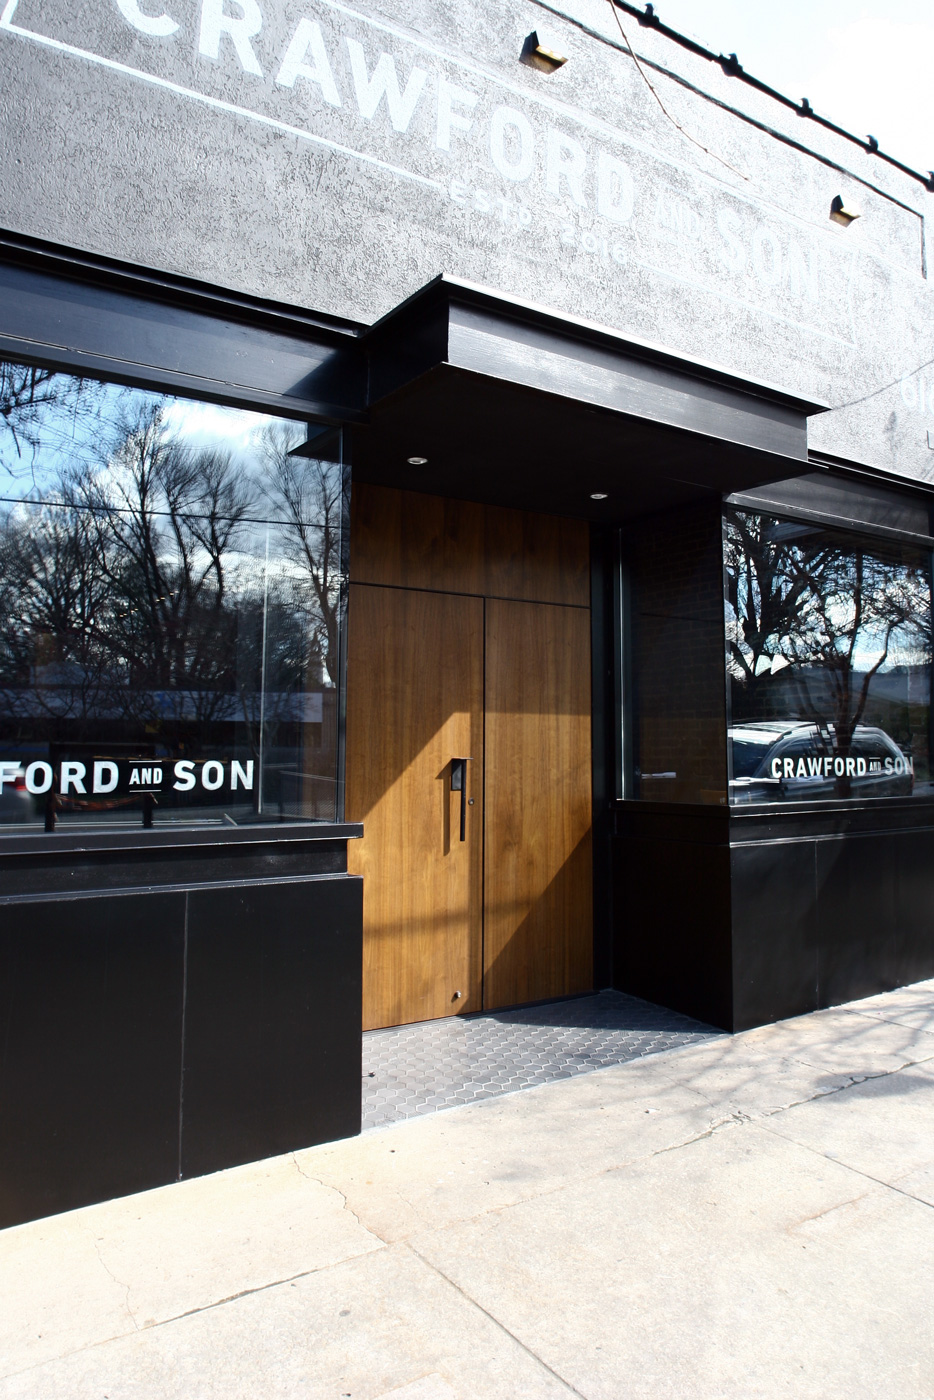 Crawford and Son Storefront